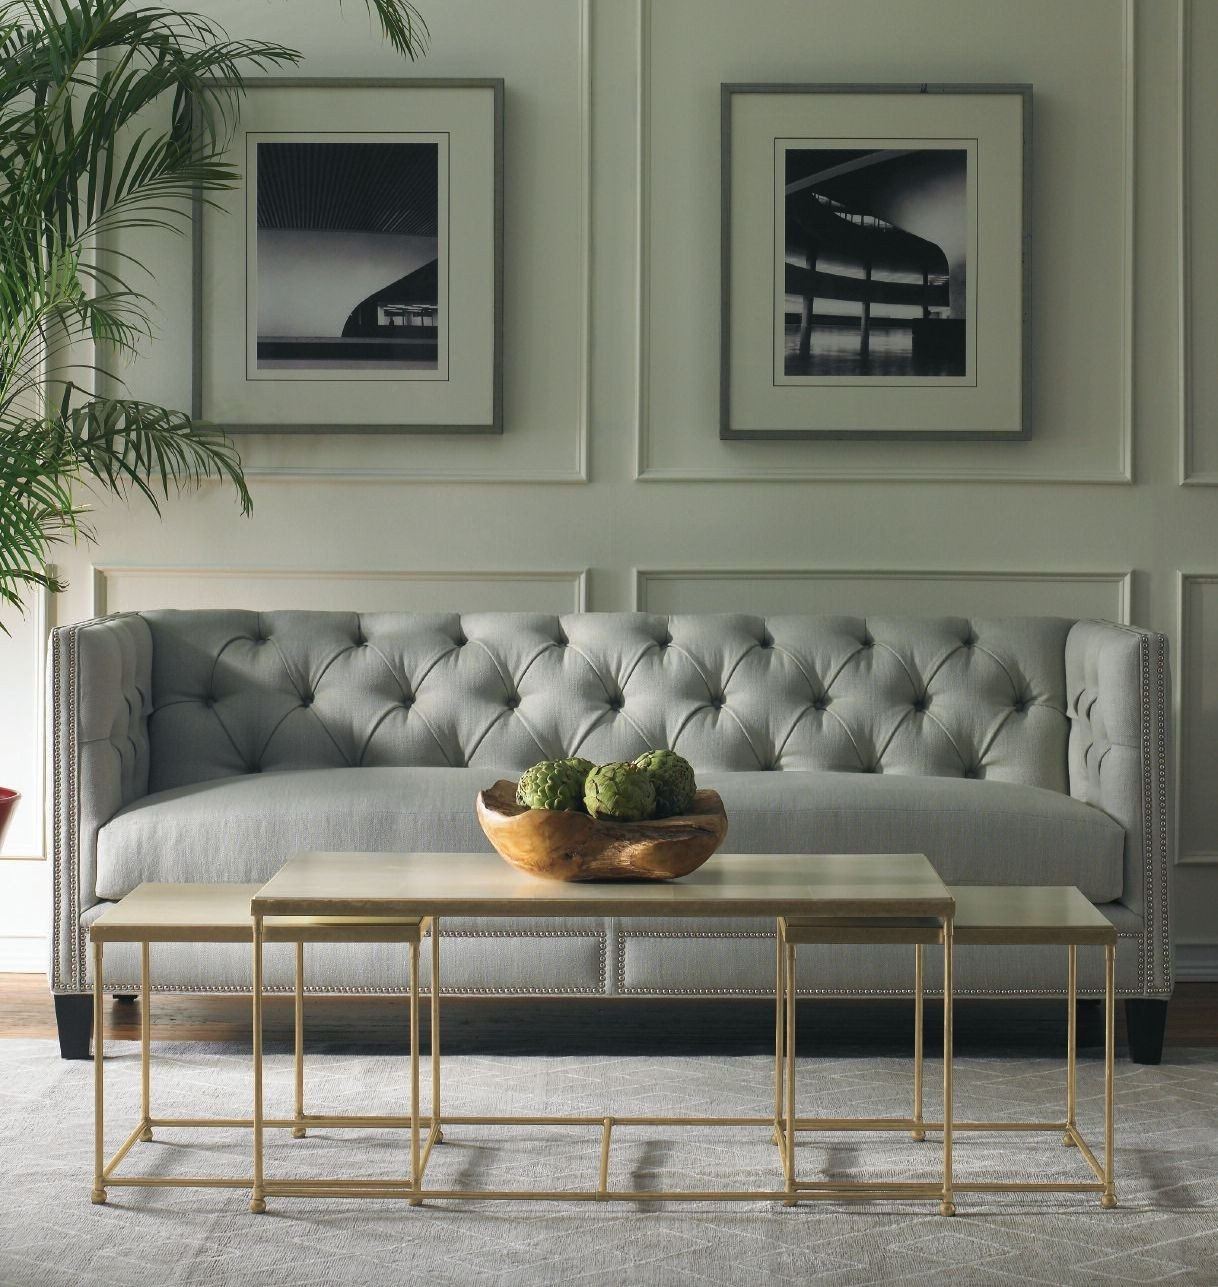 Gray sofa Living Room Decor Lovely Grey In Home Decor Passing Trend or Here to Stay